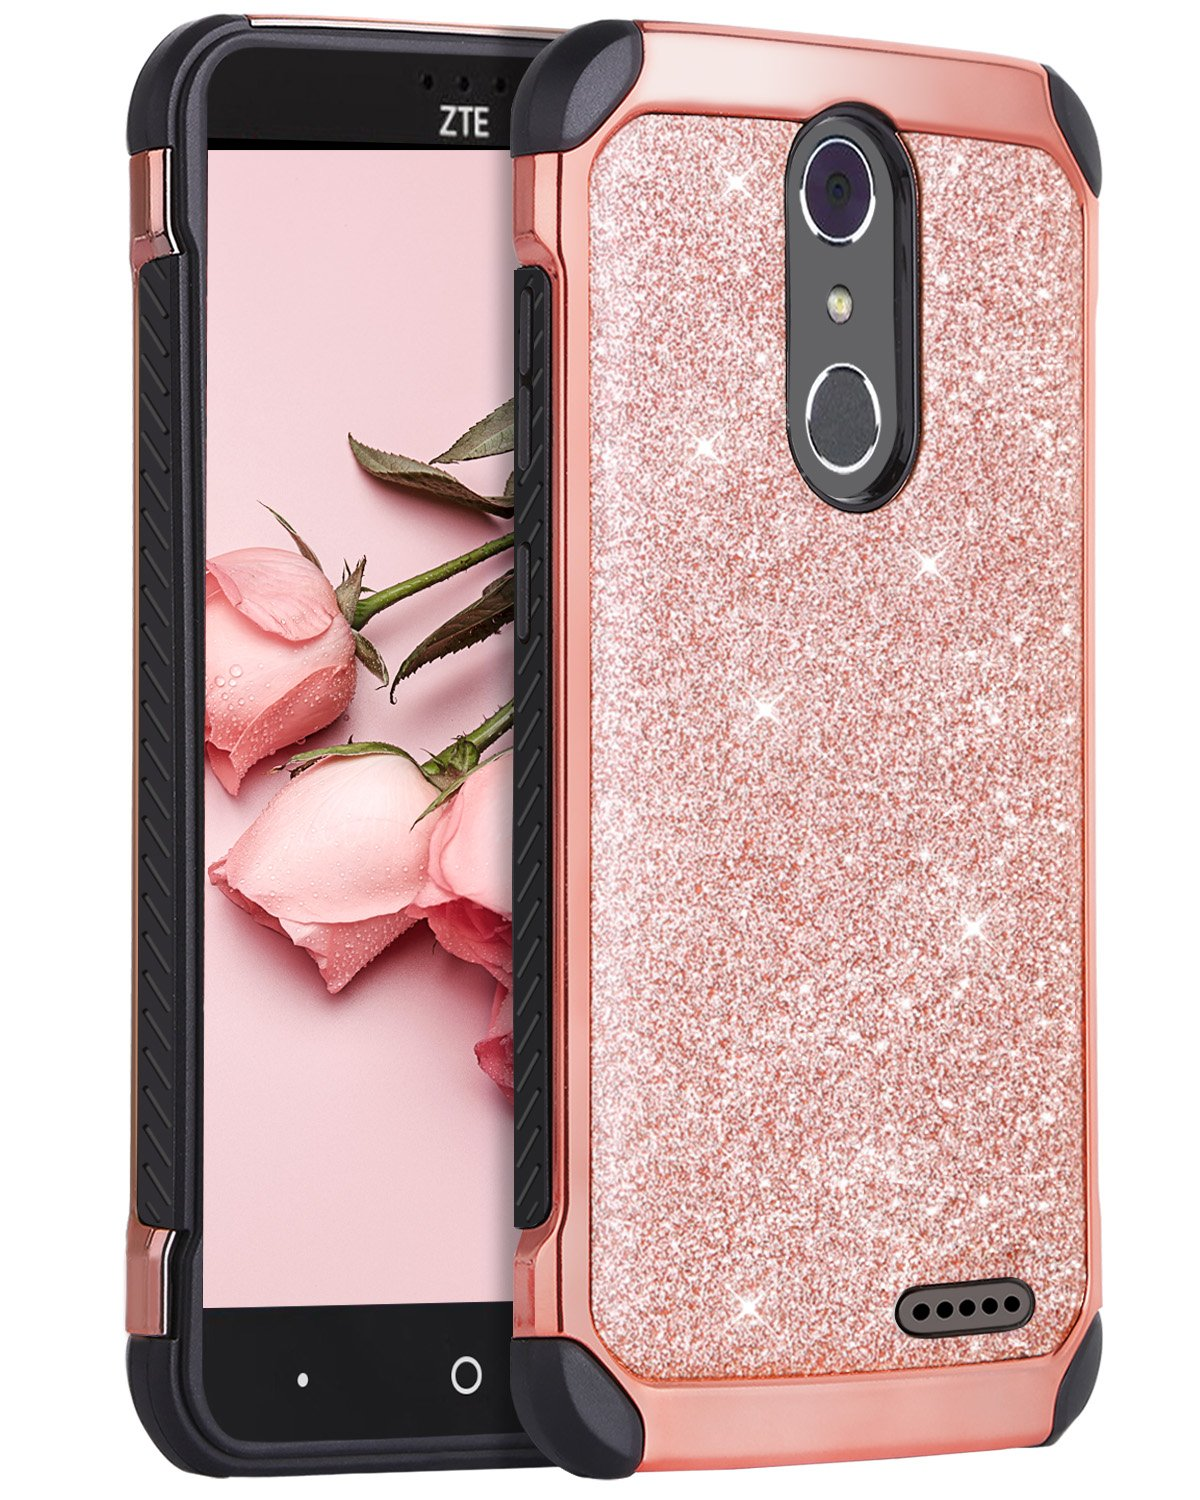 new product 3ac0c 16b78 ZTE Grand X4 Case, ZTE Blade Spark Case,ZTE Grand X 4 Case,BENTOBEN 2 in 1  Sparkly Glitter Slim Hybrid Hard Cover Shockproof Protective Case for ZTE  ...